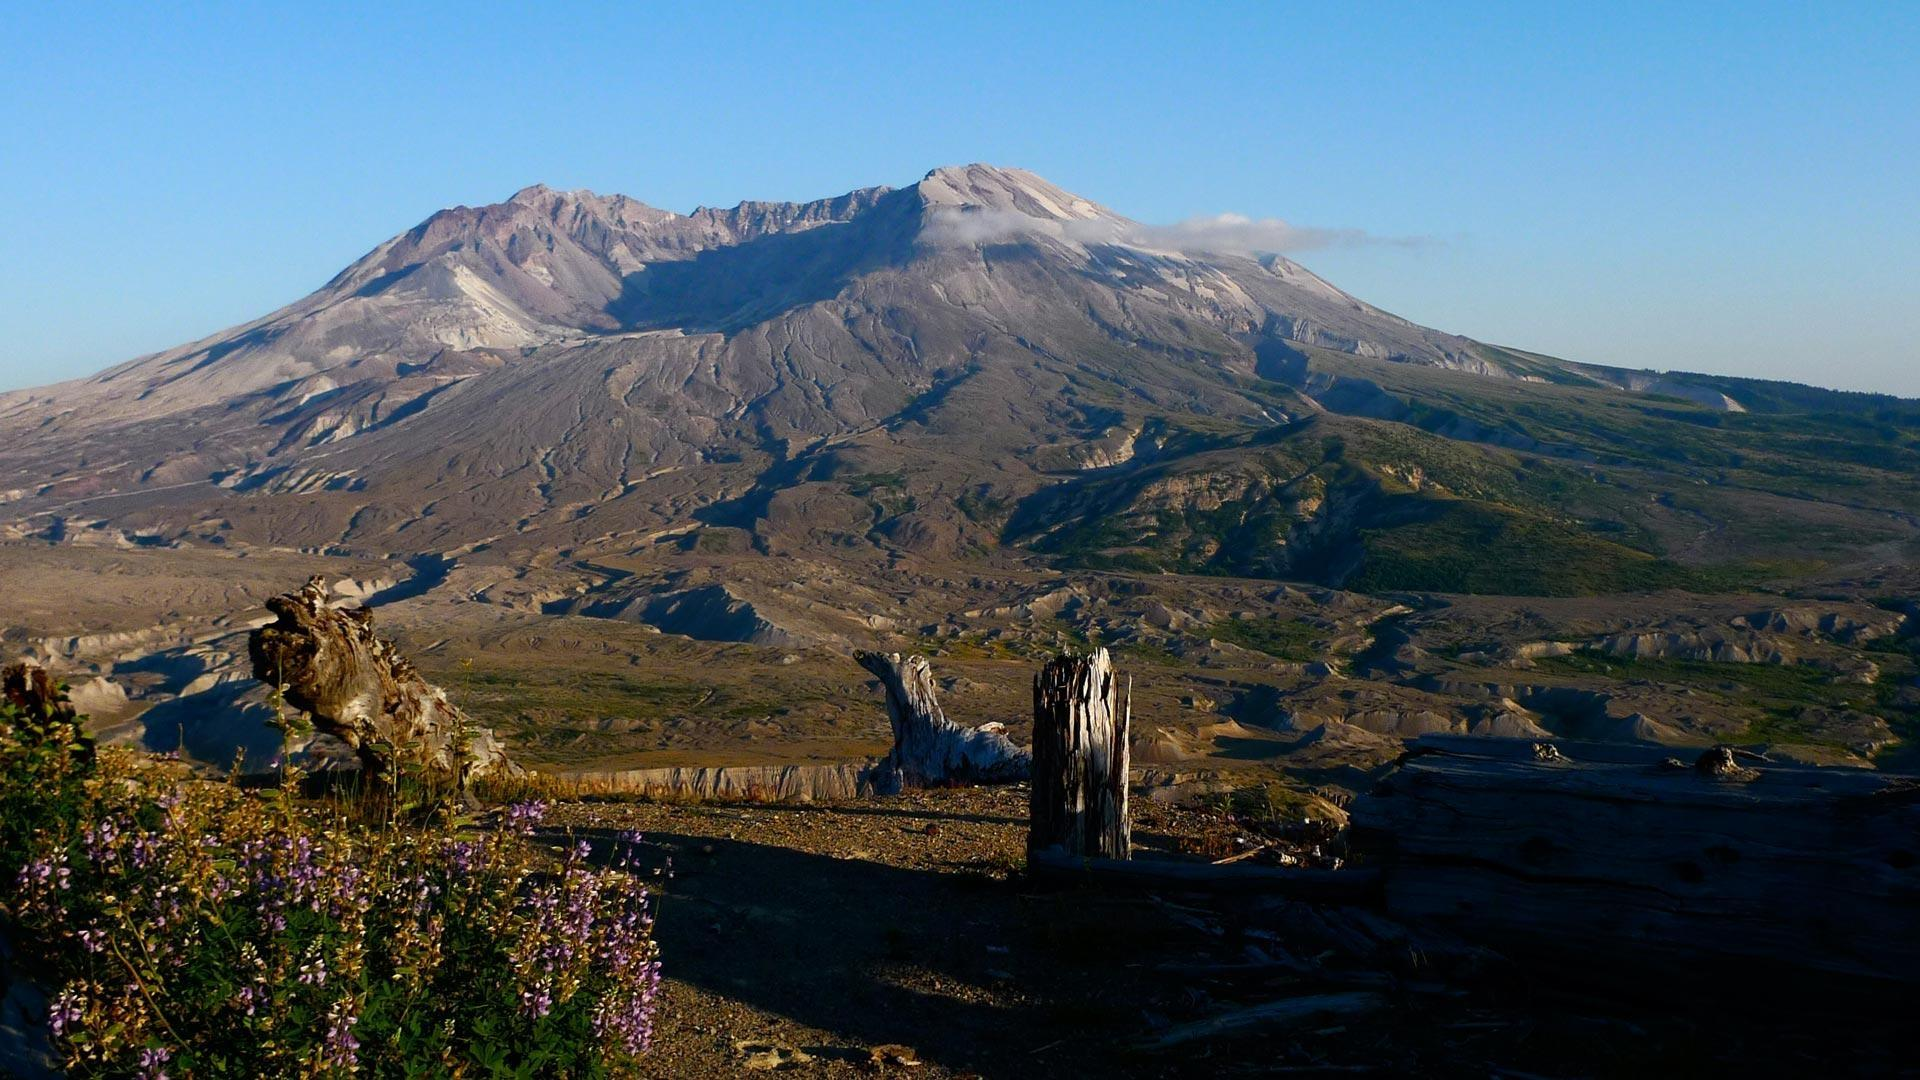 Mt. St. Helens: Back From the Dead Hero